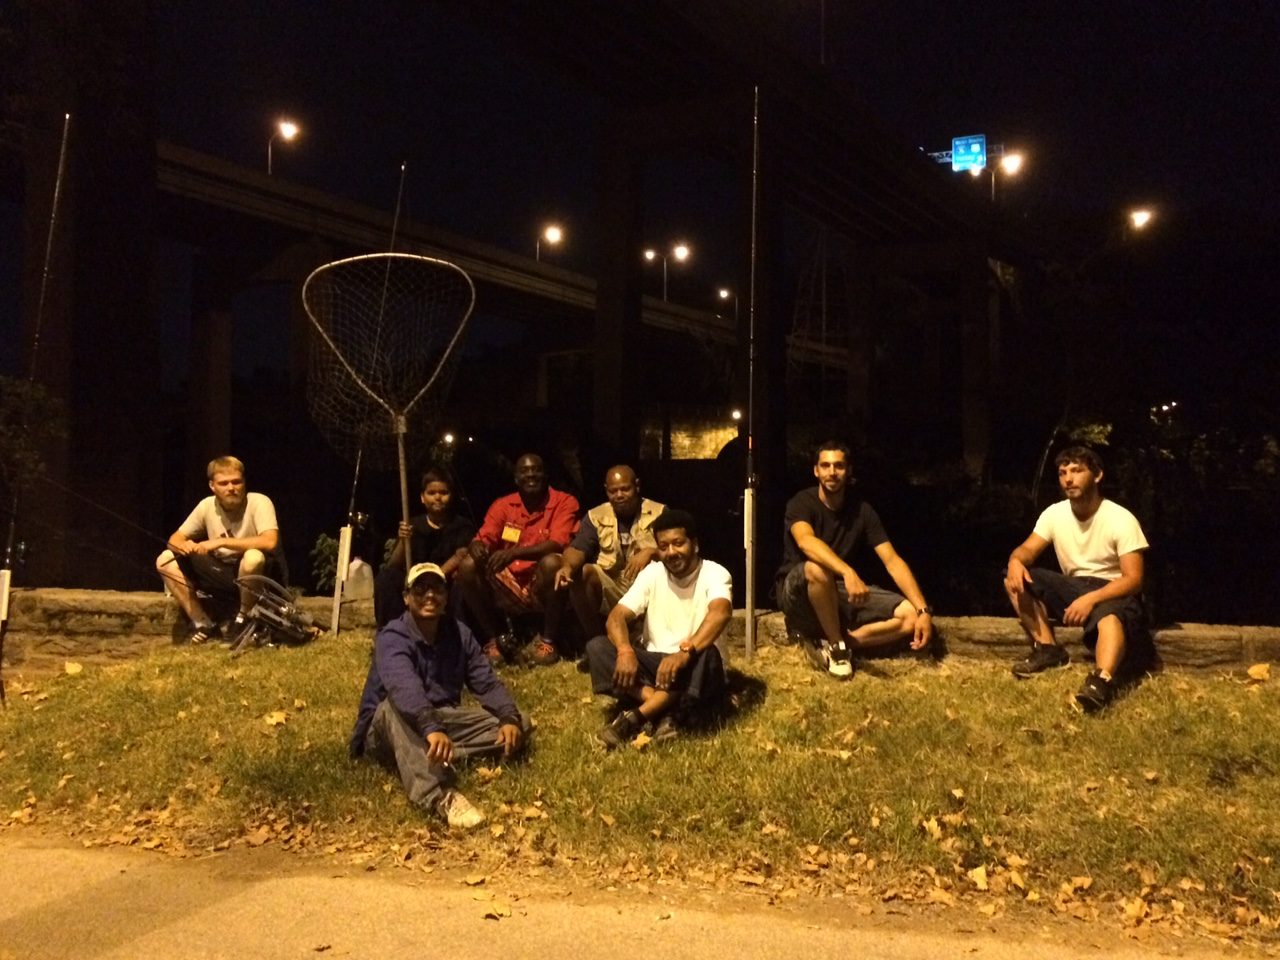 Summertime means nighttime fishing in the Schuylkill River where people catch catfish weighing as much as 40 pounds. From left: Eric Pell, Marcus Fero III, Marcus Fero, Troy Rimes, Darryl Booker, Michael White, Dave Stulpin and Anthony Schuler.